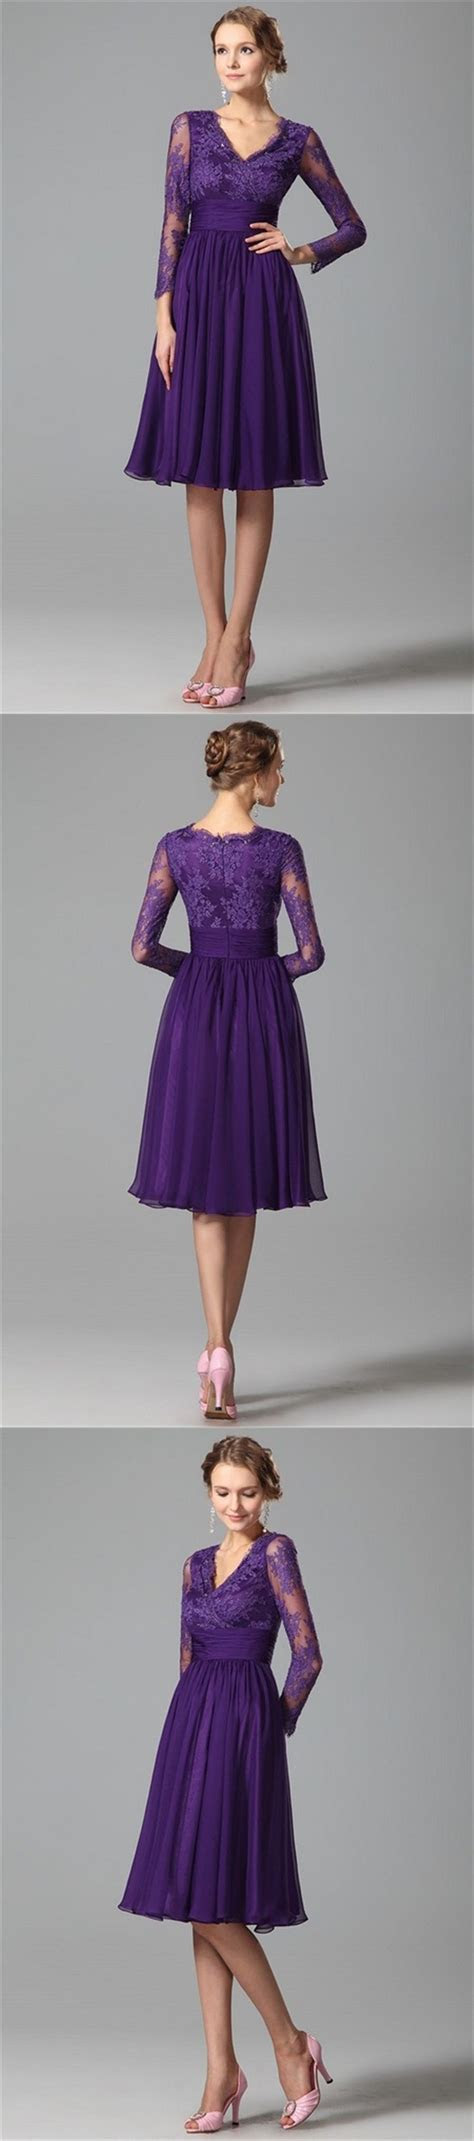 Purple Bridesmaid Dresses 2016 Lace 3/4 Long Sleeves V